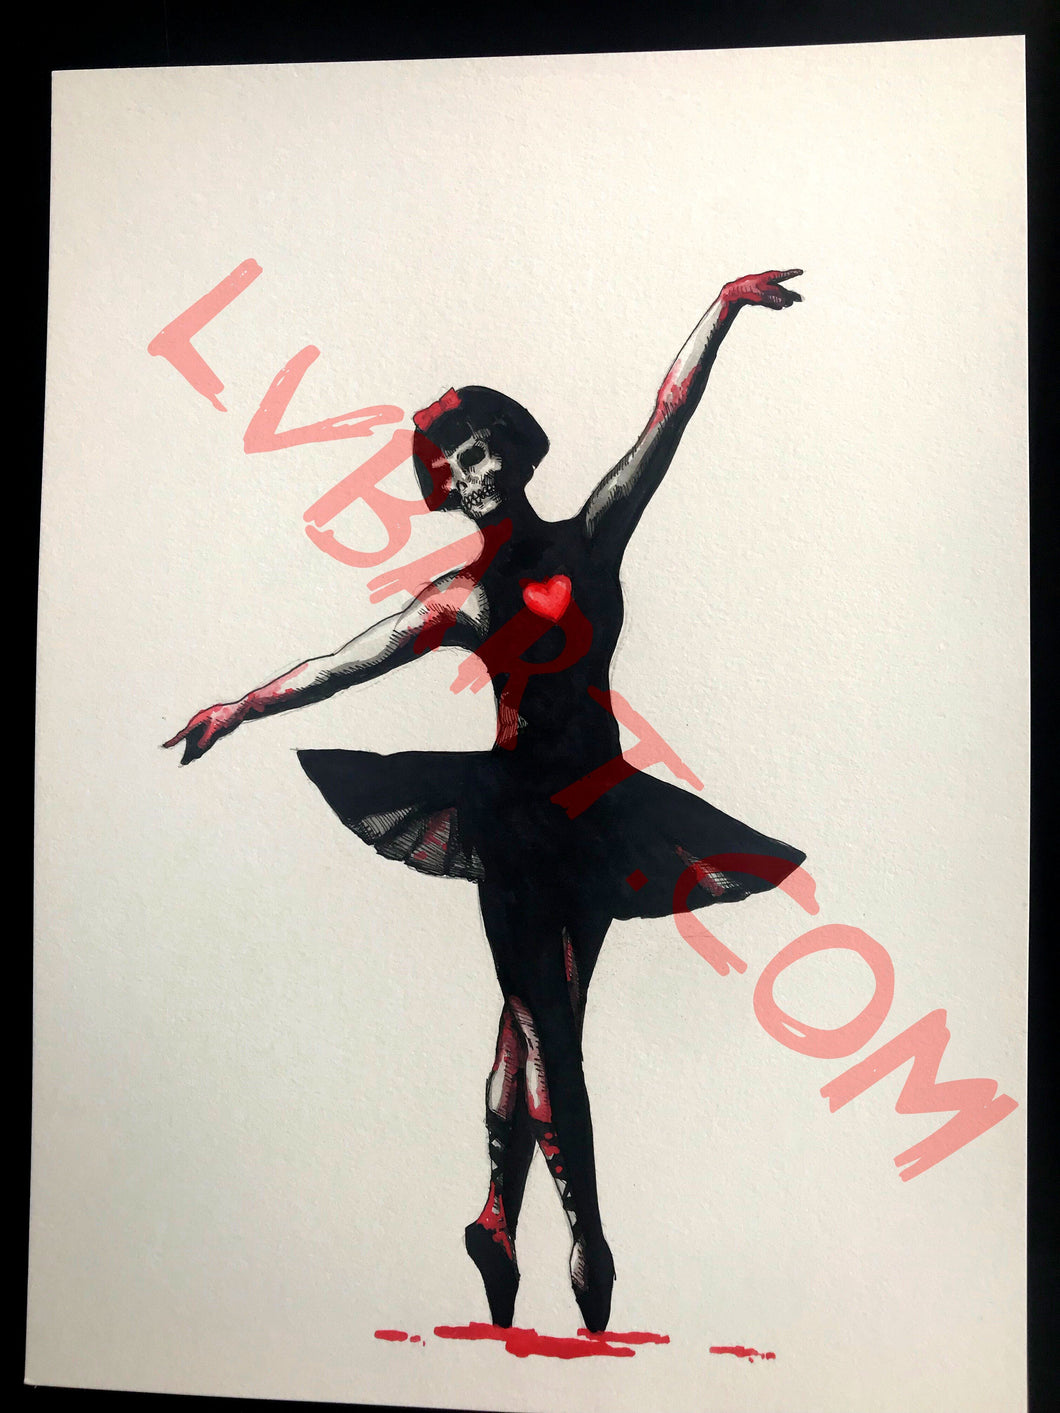 Ballerina 11x15 ORIGINAL Artwork